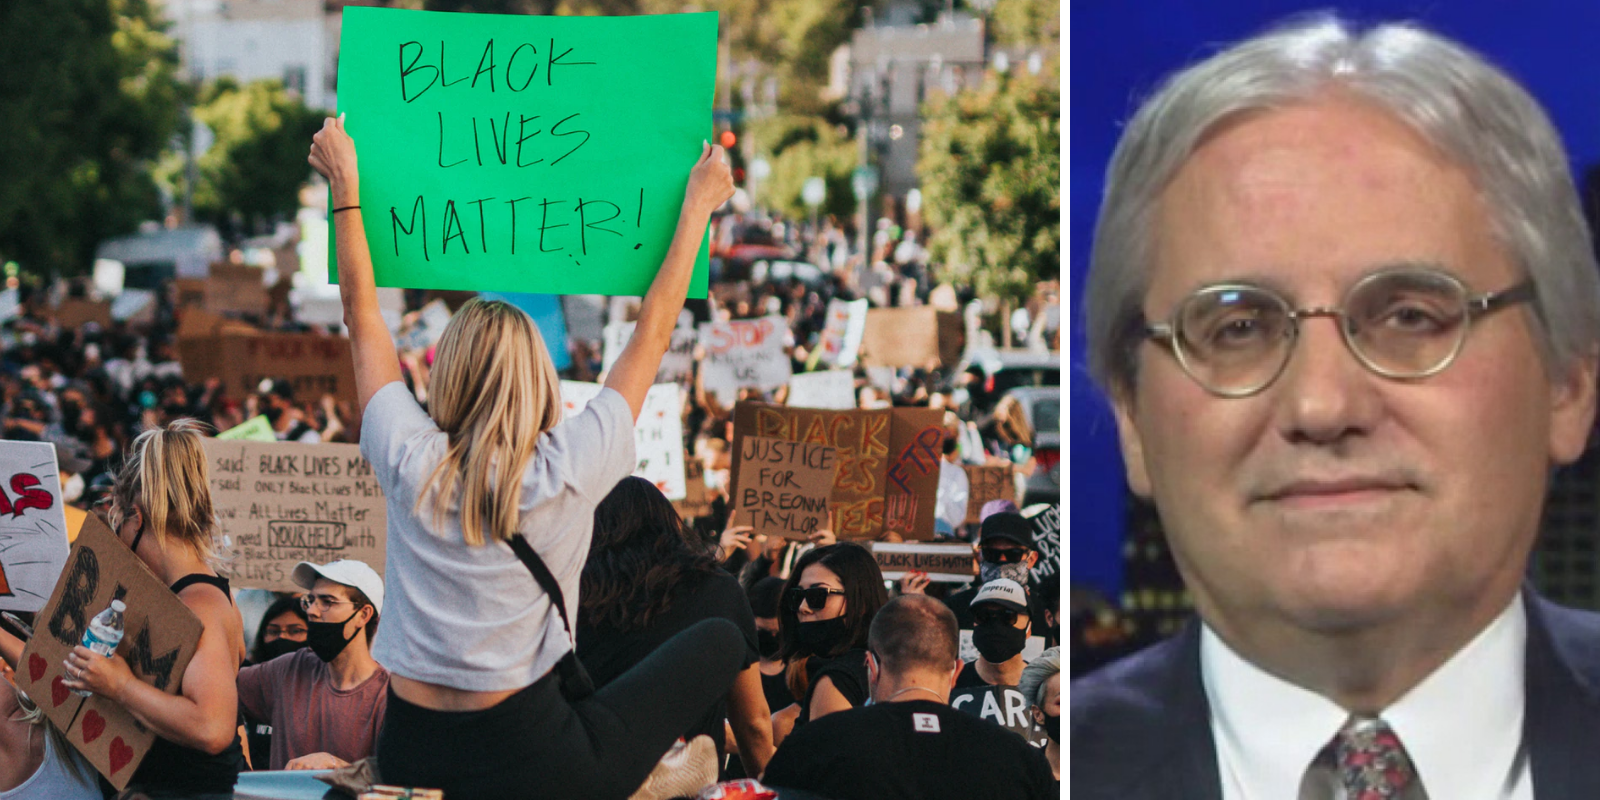 Campus mob targets Cornell Law professor who criticized Black Lives Matter